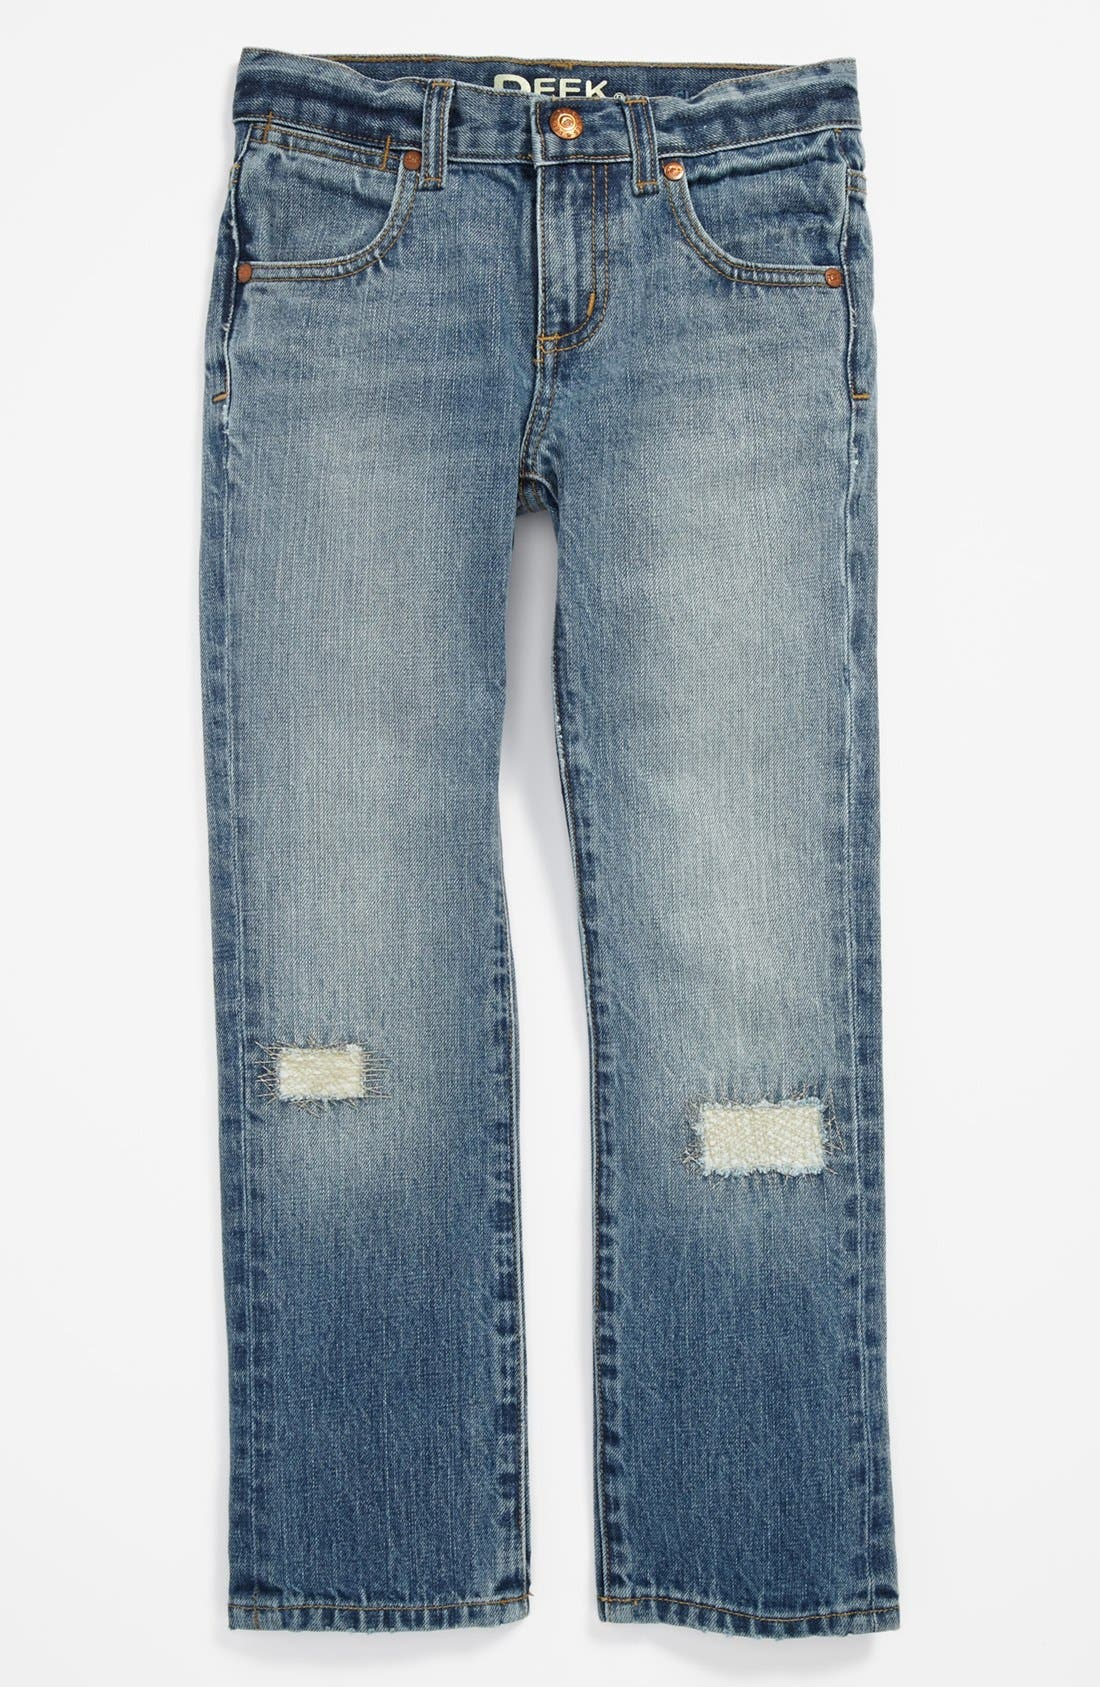 Alternate Image 2  - Peek 'Ellis' Straight Leg Jeans (Toddler Boys, Little Boys & Big Boys)